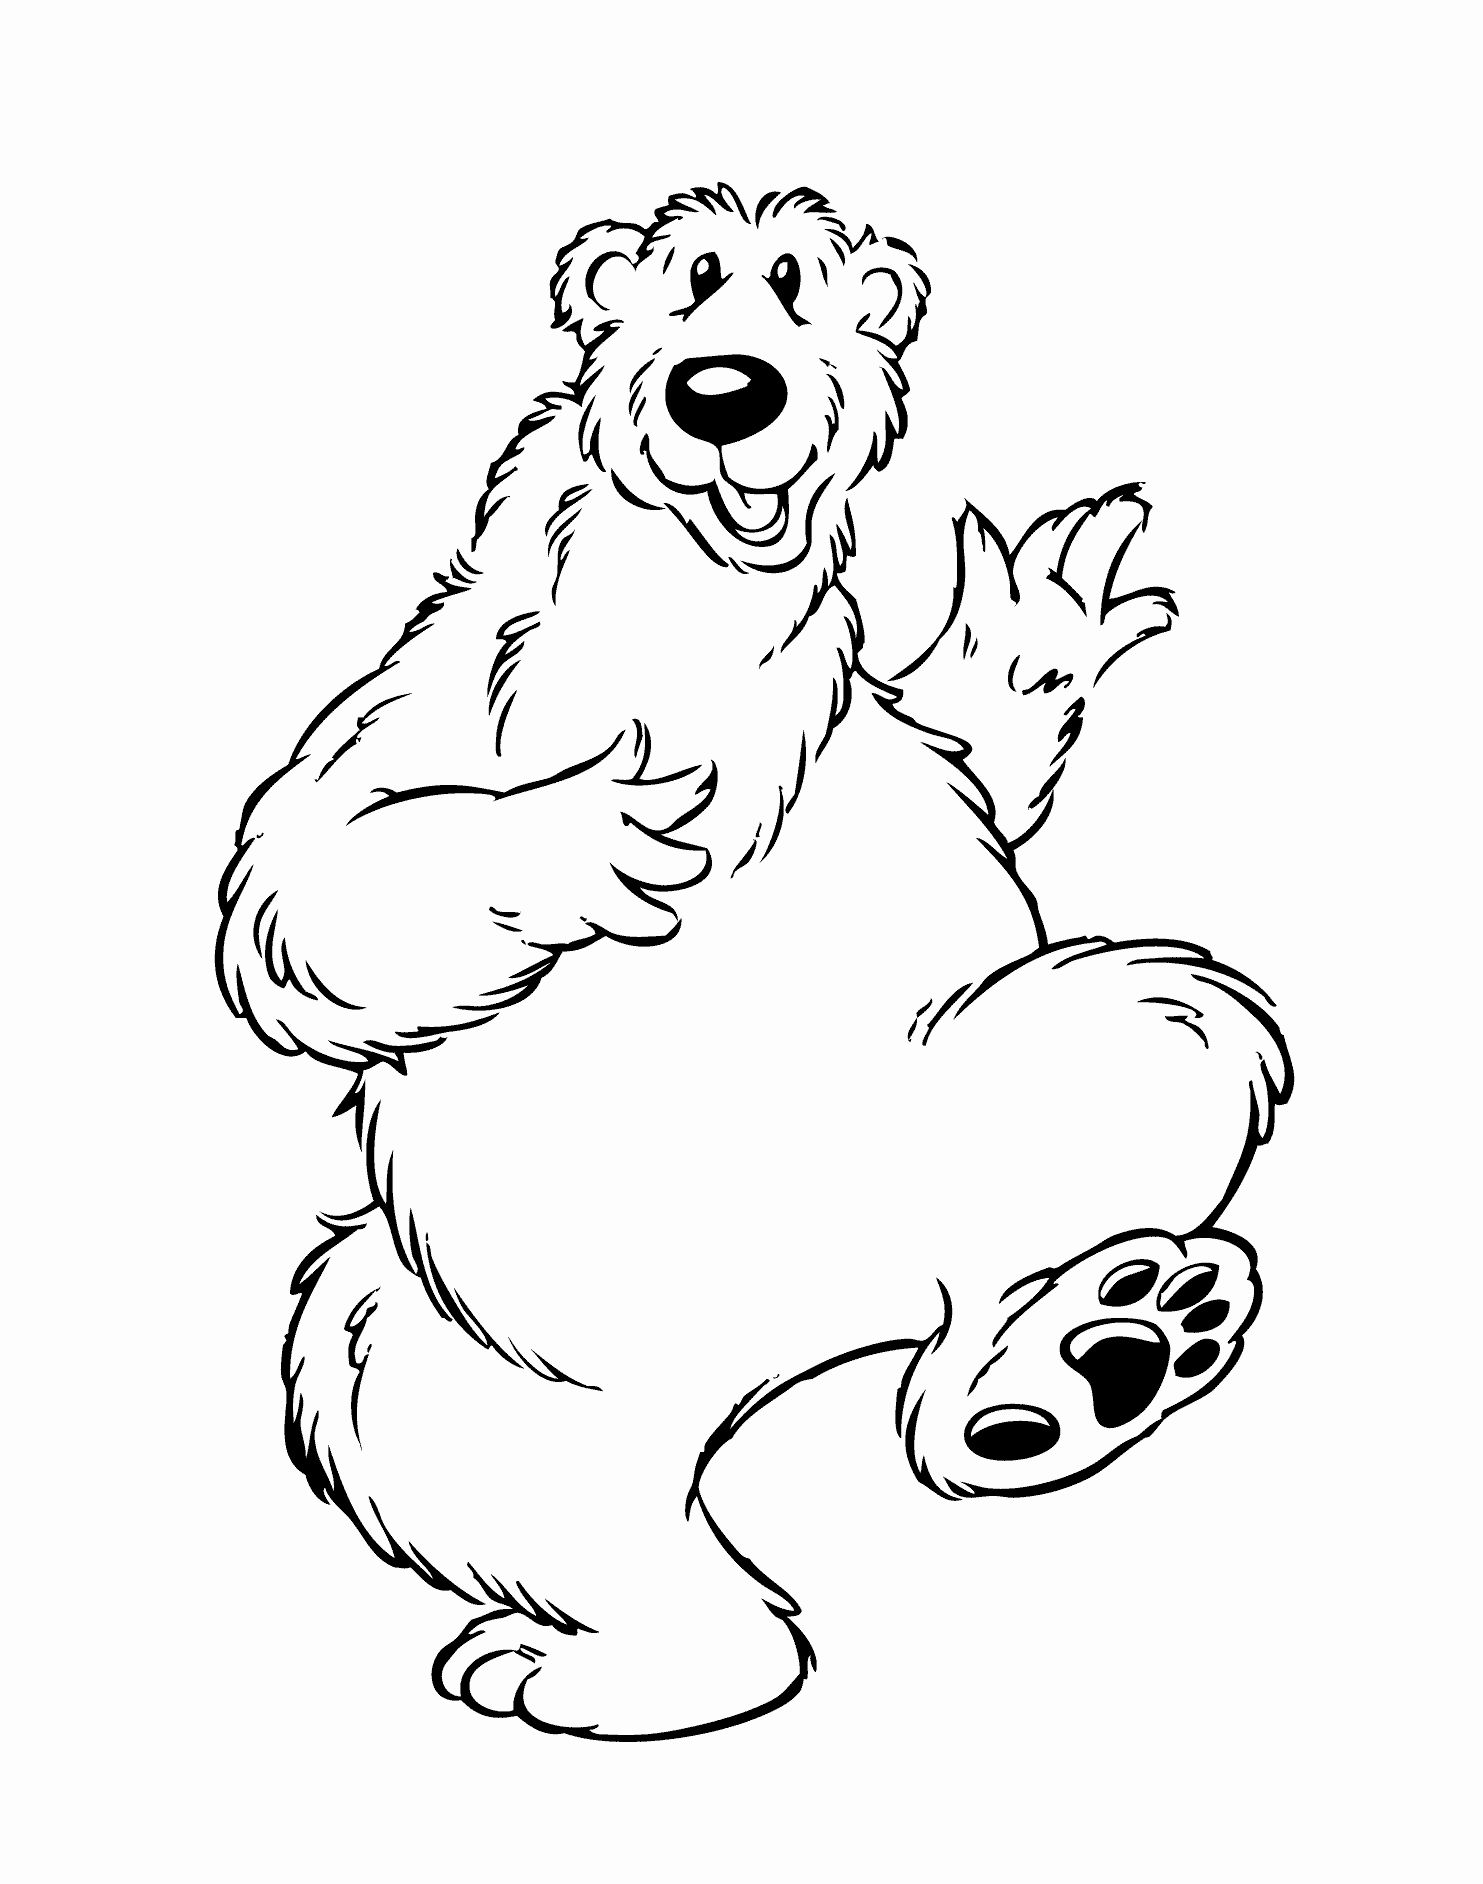 Coloring Pic Of Animals Inspirational Introduce Kids Wild Animals Using Animals Coloring Bear Coloring Pages Animal Coloring Pages House Colouring Pages